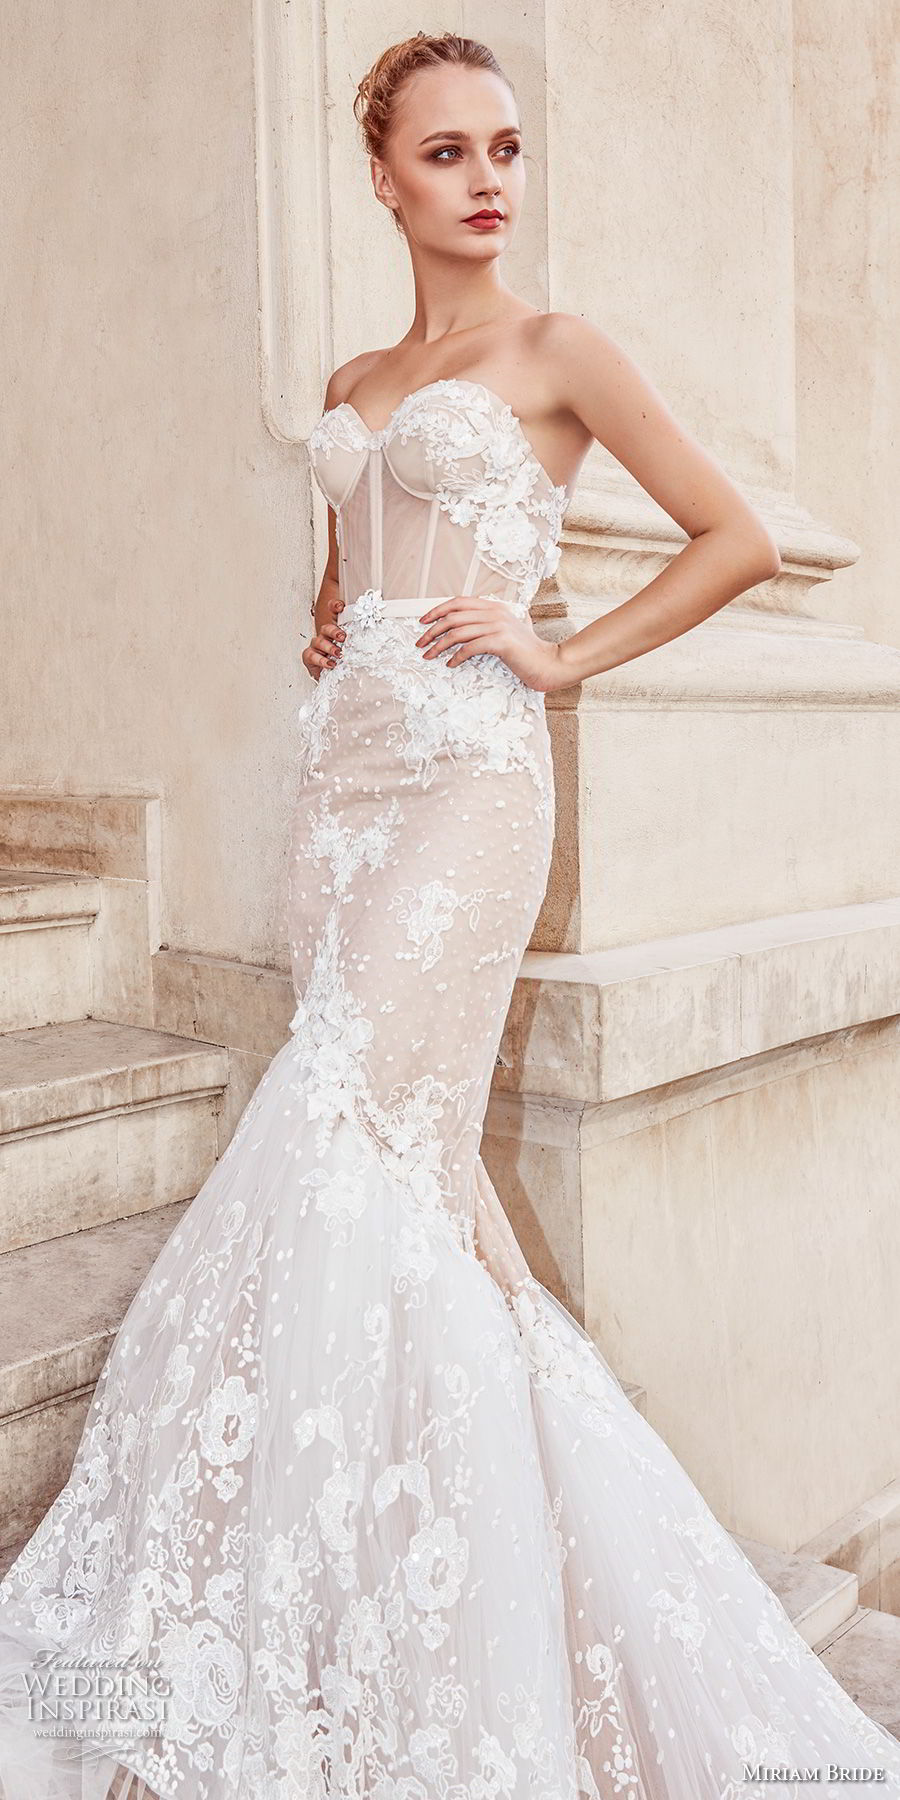 Miriams Bride 2018 Wedding Dresses | Wedding Inspirasi